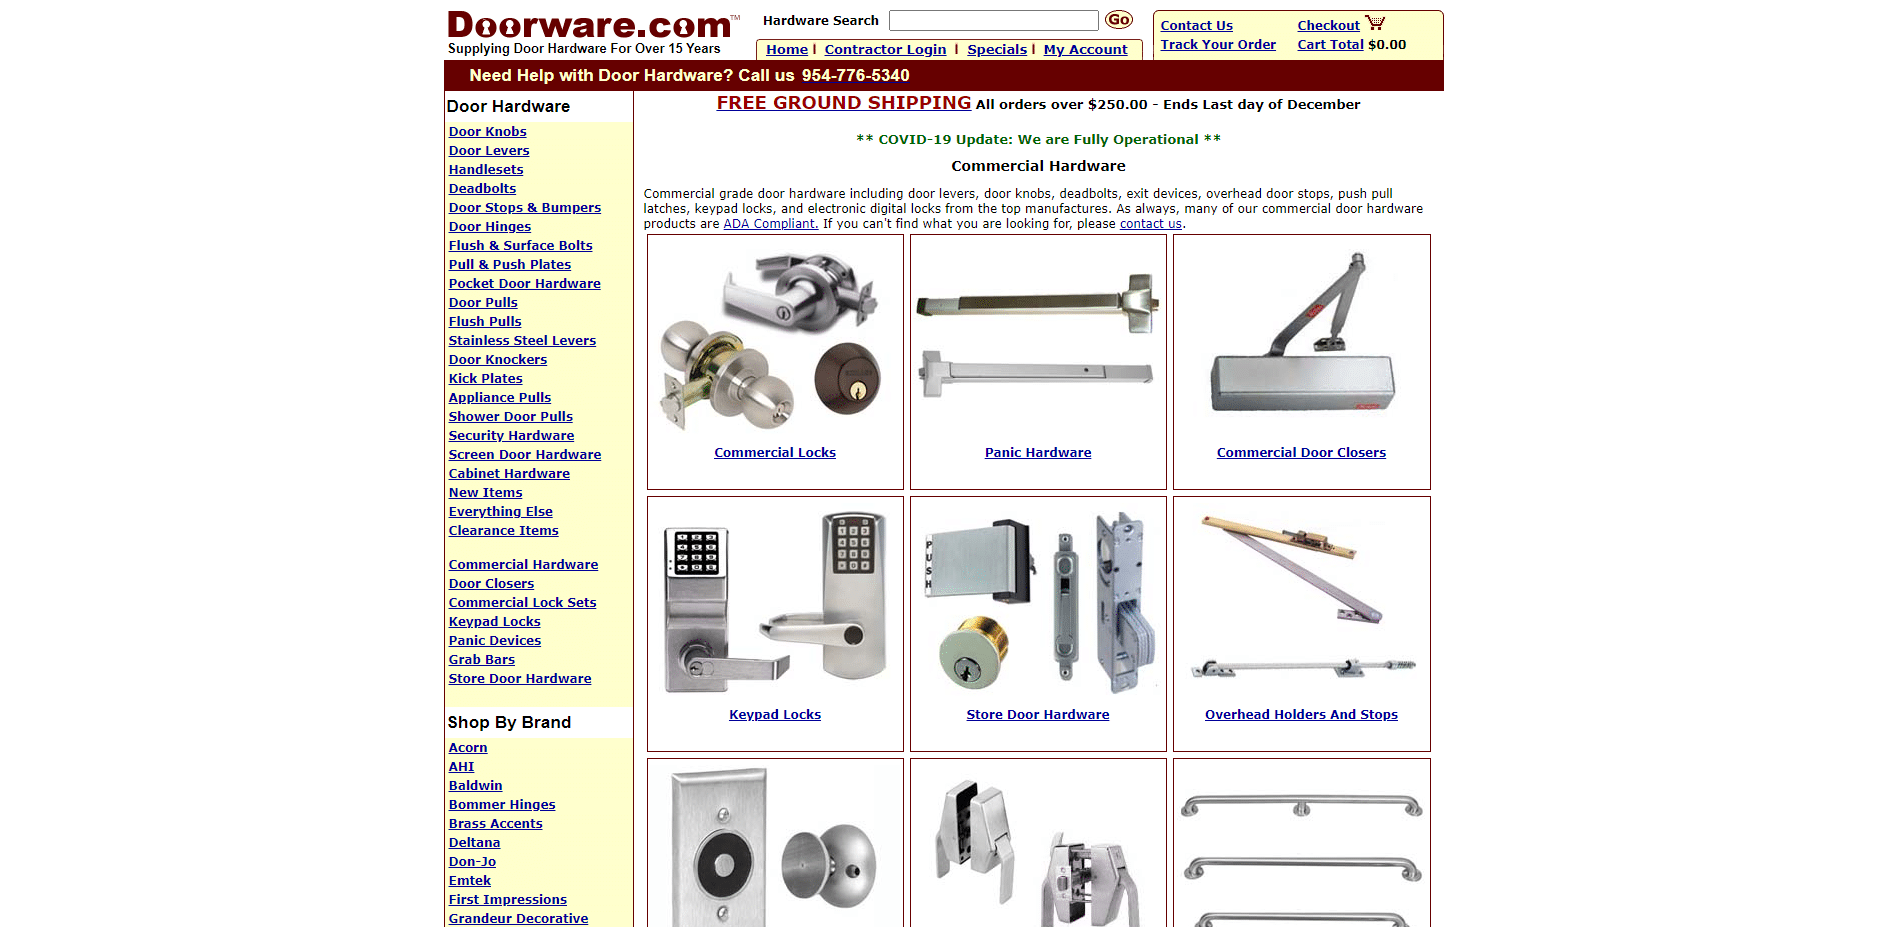 Doorware ugly commercial hardware website